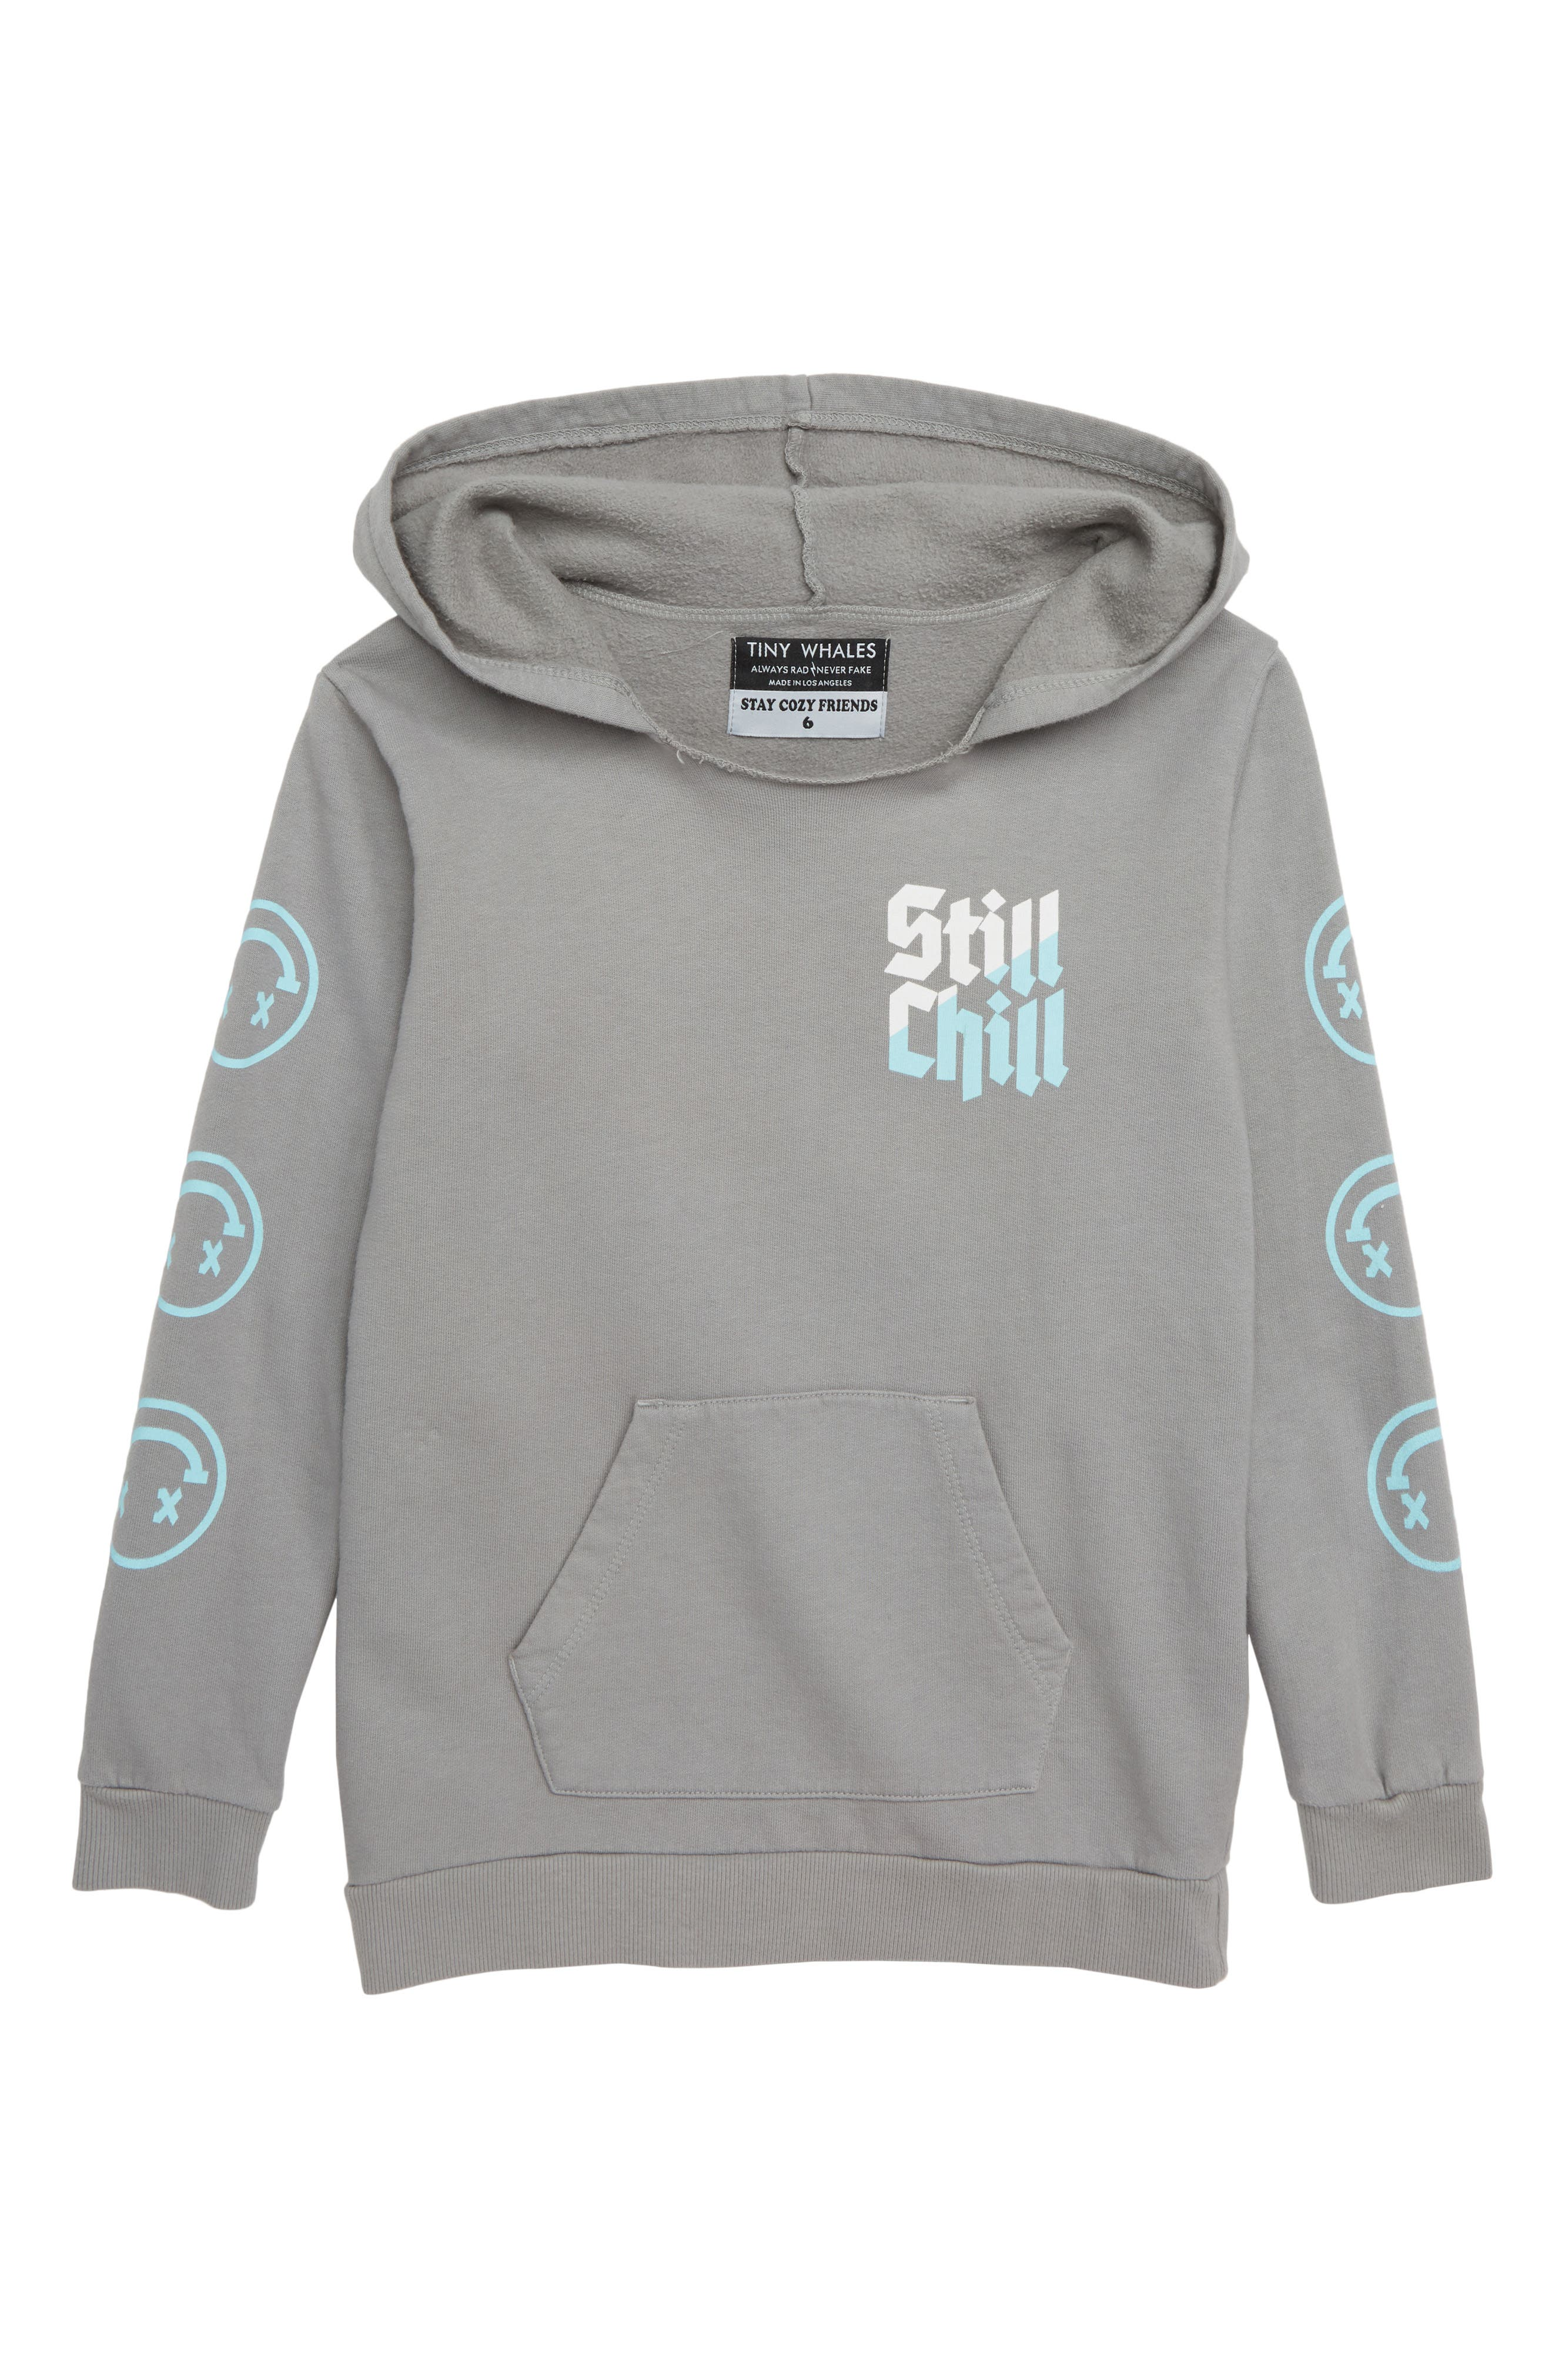 Still Chill Hoodie,                             Main thumbnail 1, color,                             SLATE